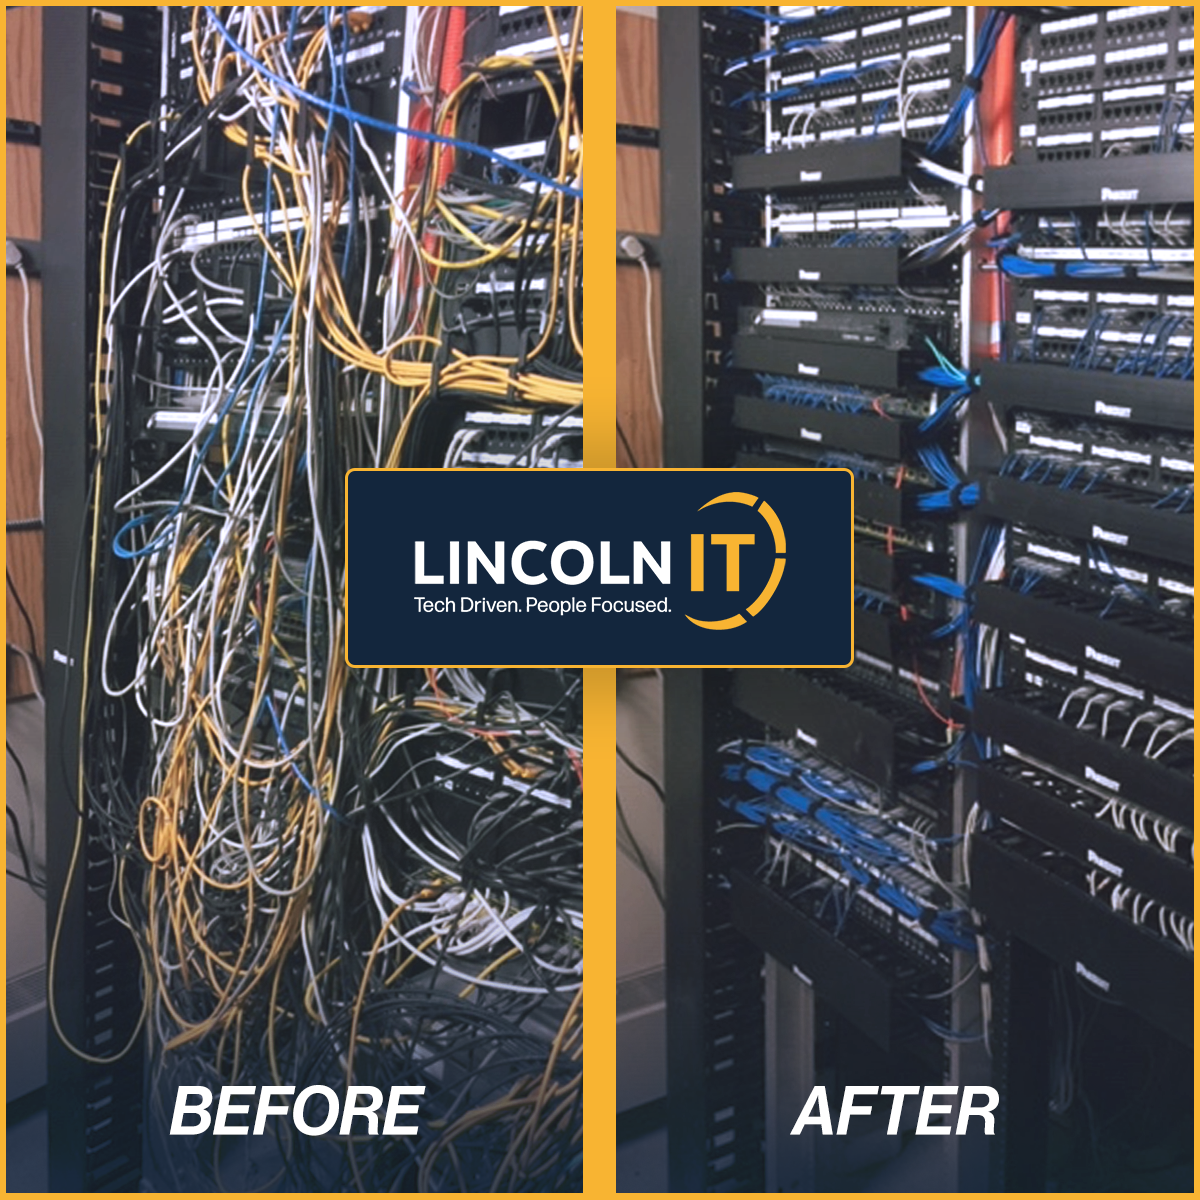 Lincoln-IT---Before-and-After-of-chord-cleanup-on-a-server-3